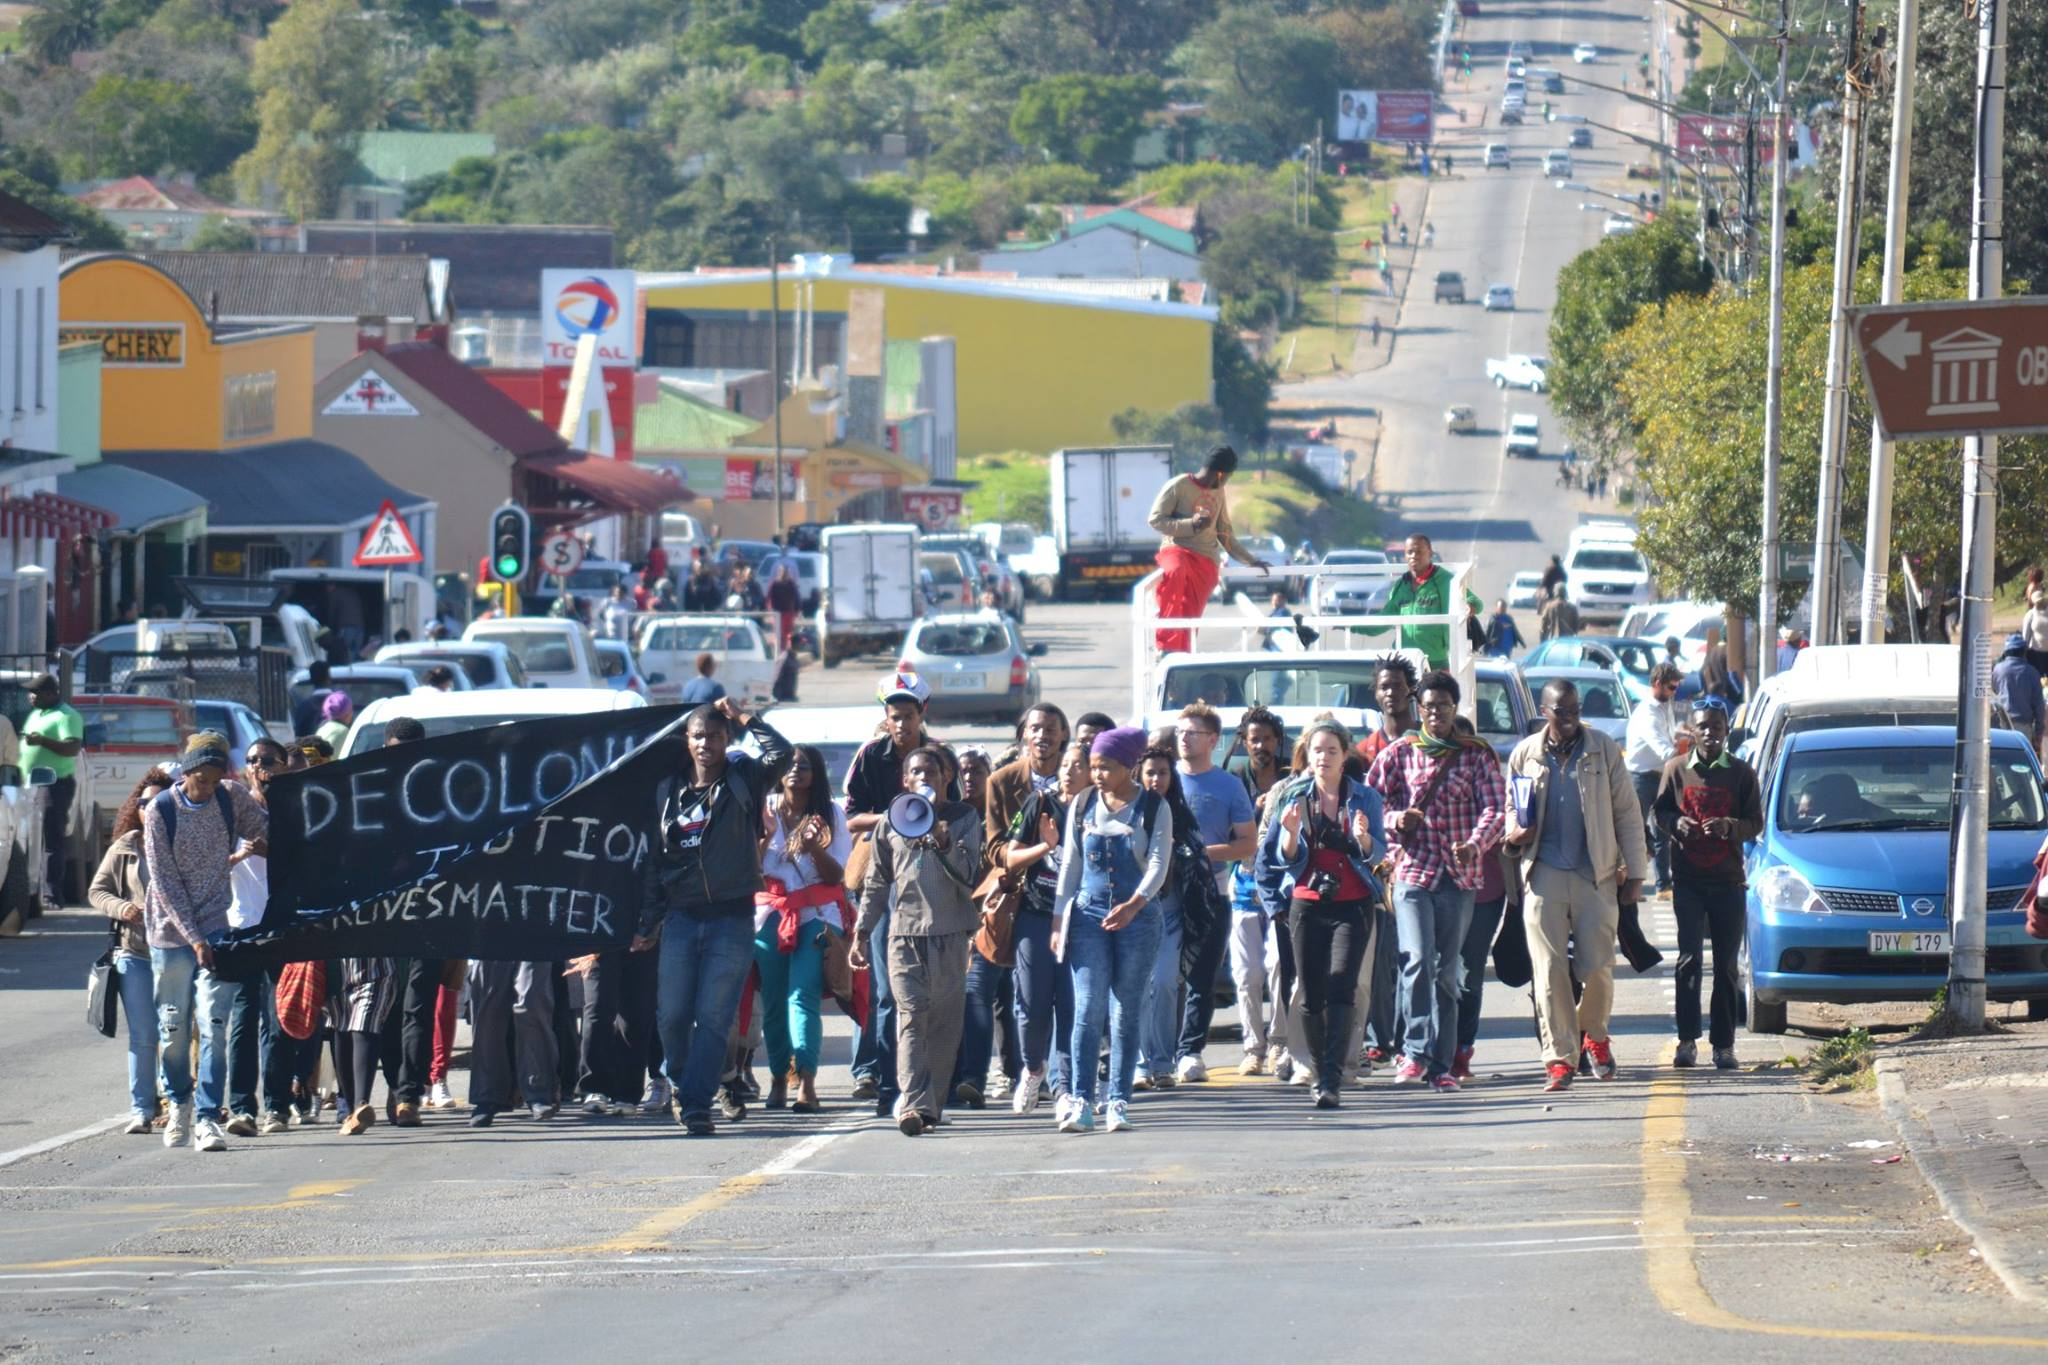 BSM protests in Grahamstown a few weeks ago image by Xolile Madinda